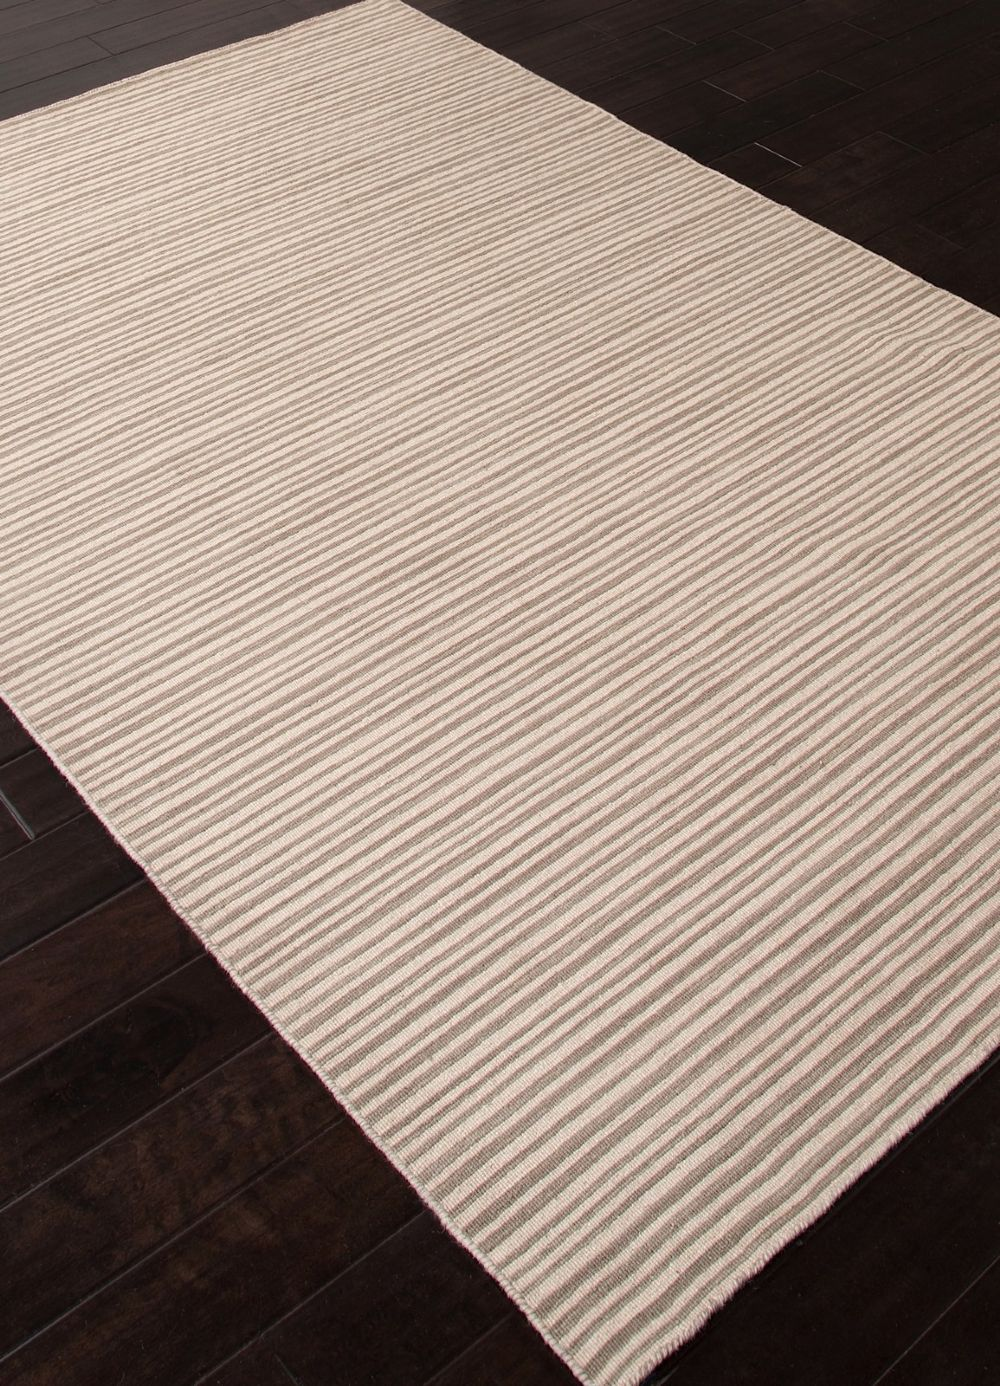 jaipur pura vida solid/striped area rug collection